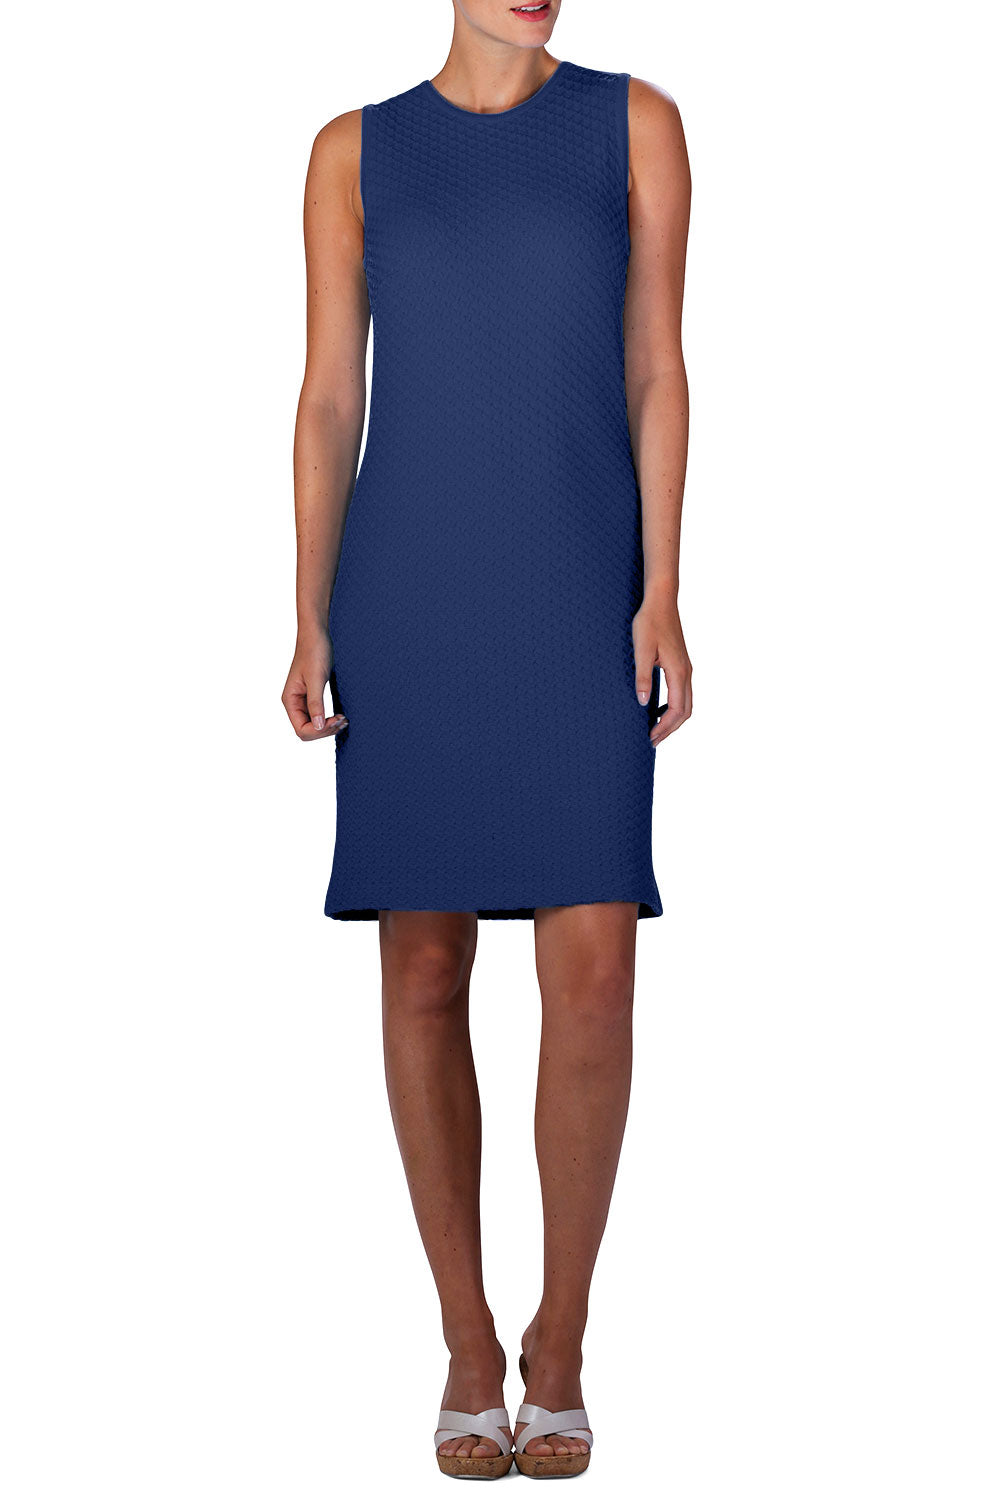 FAB Knitted Dress (Navy)